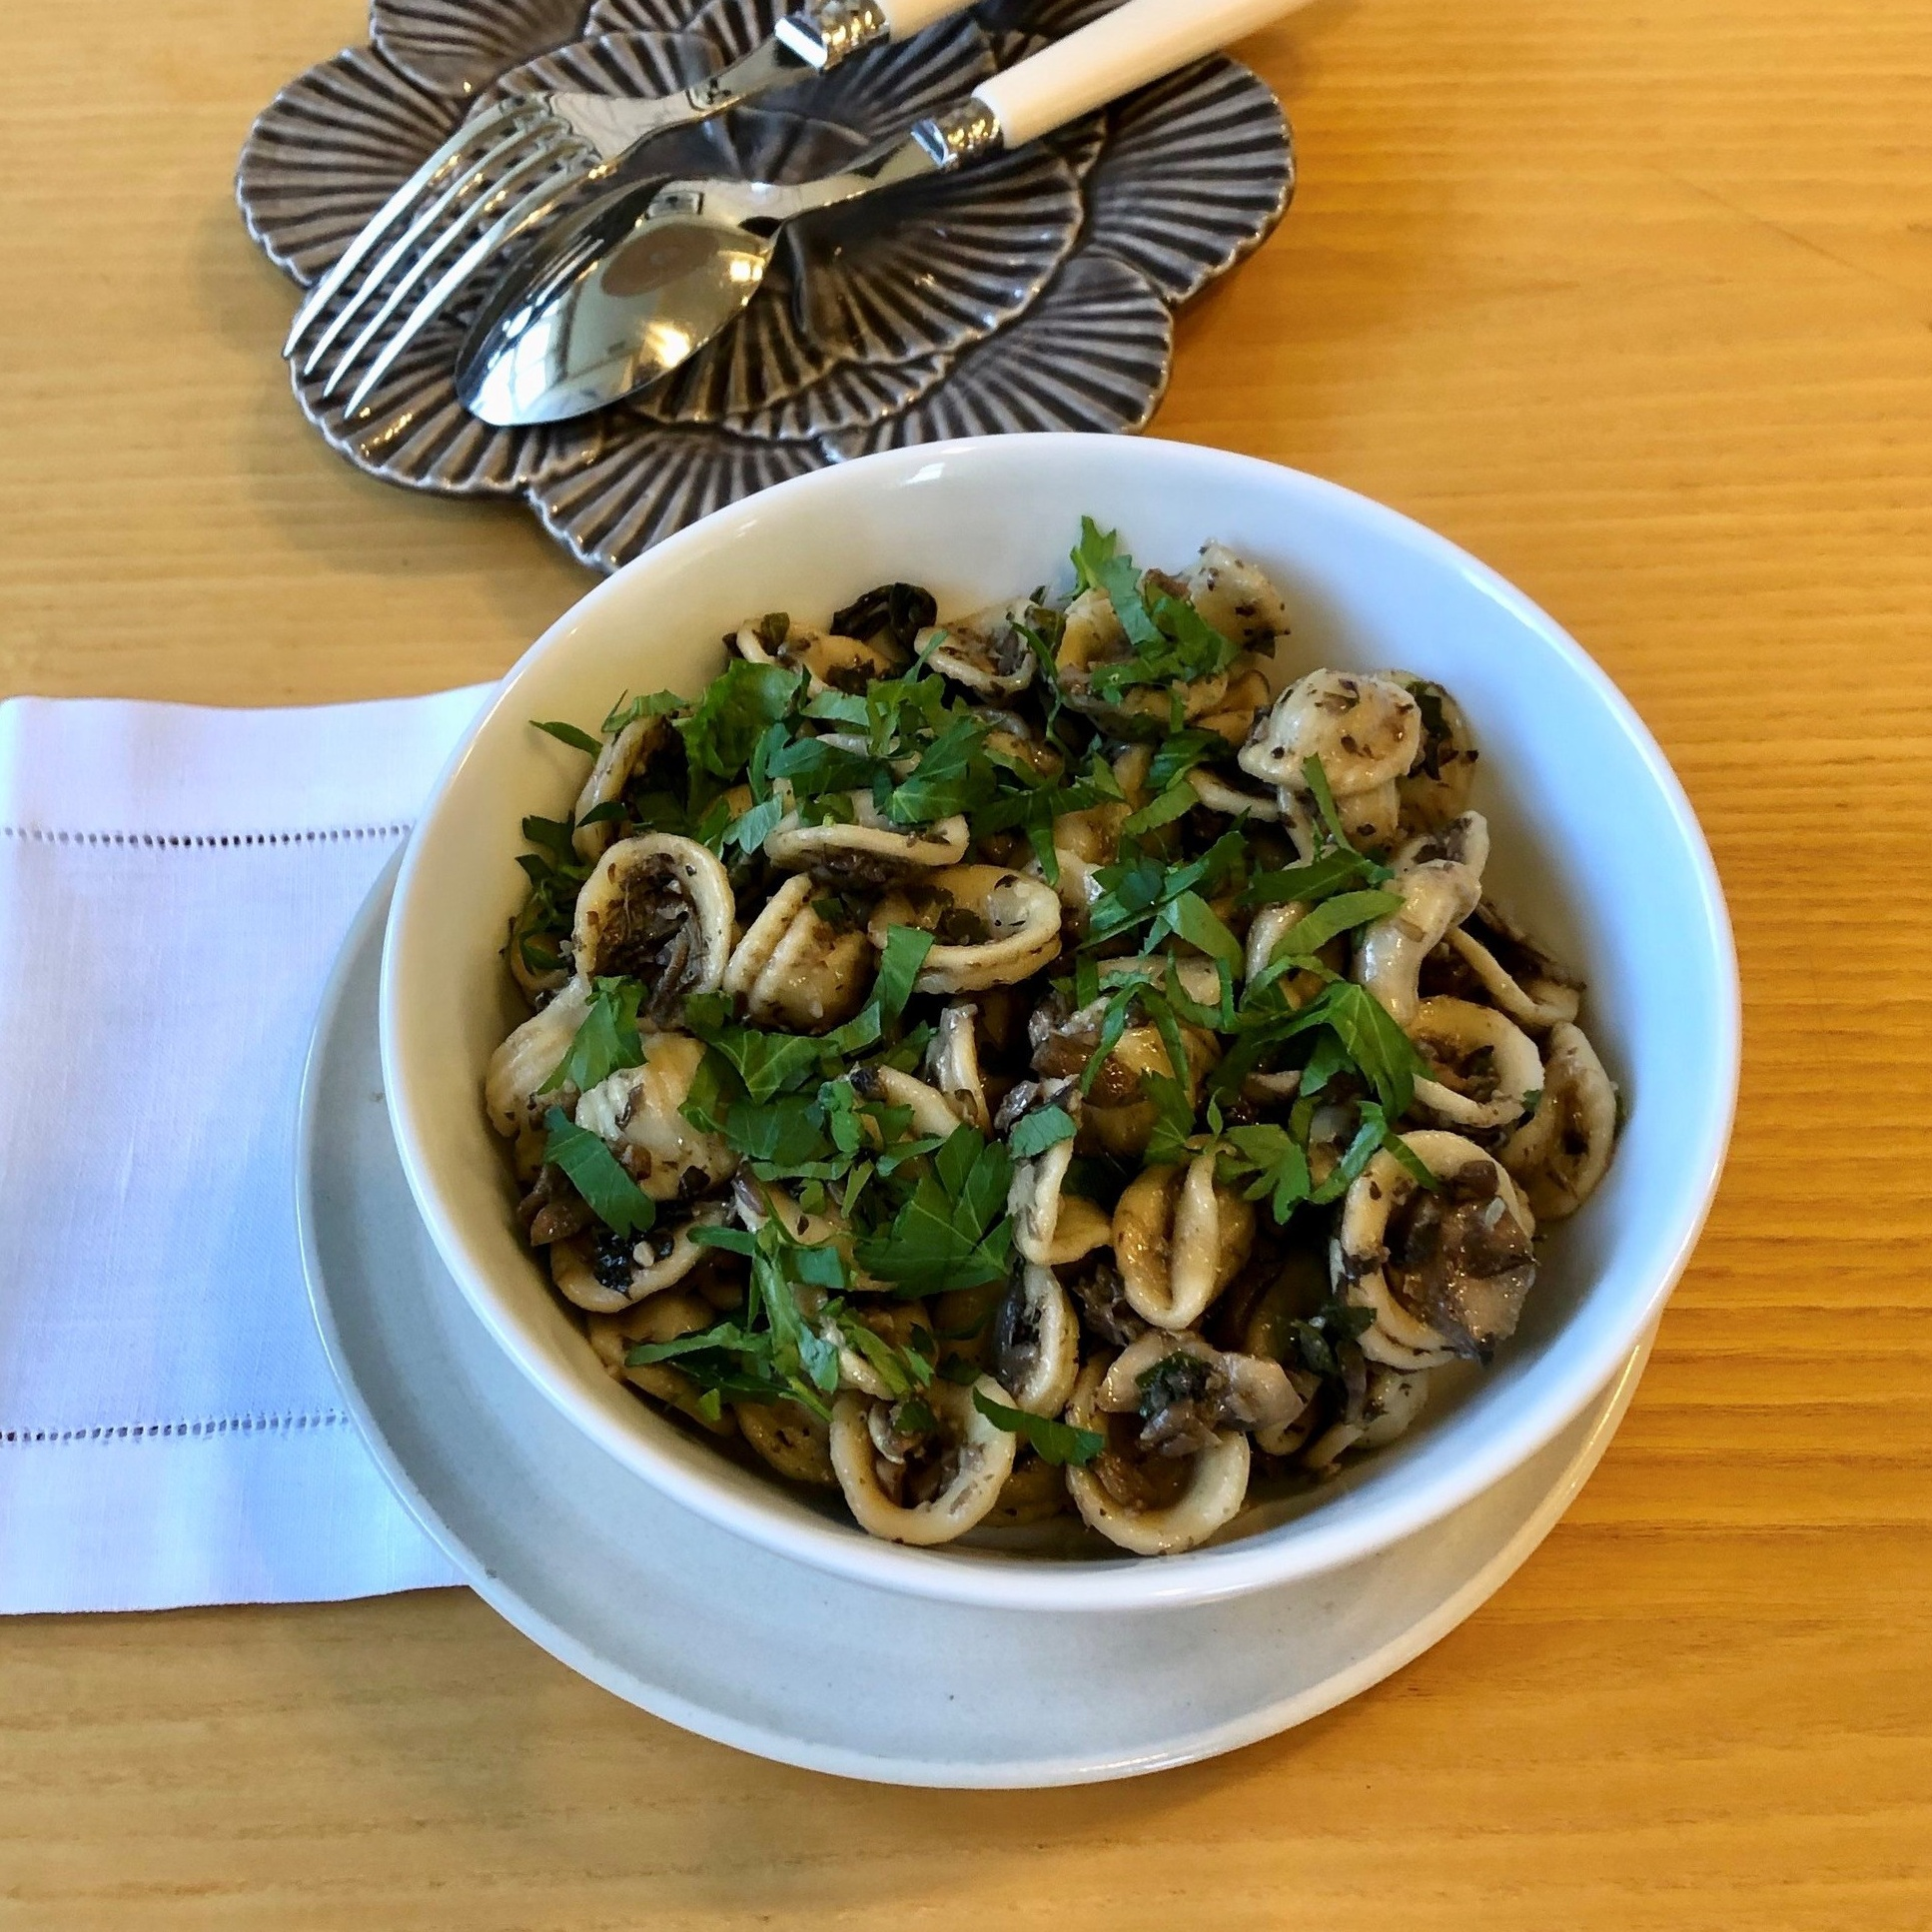 Orecchiette+with+Mushrooms.jpg